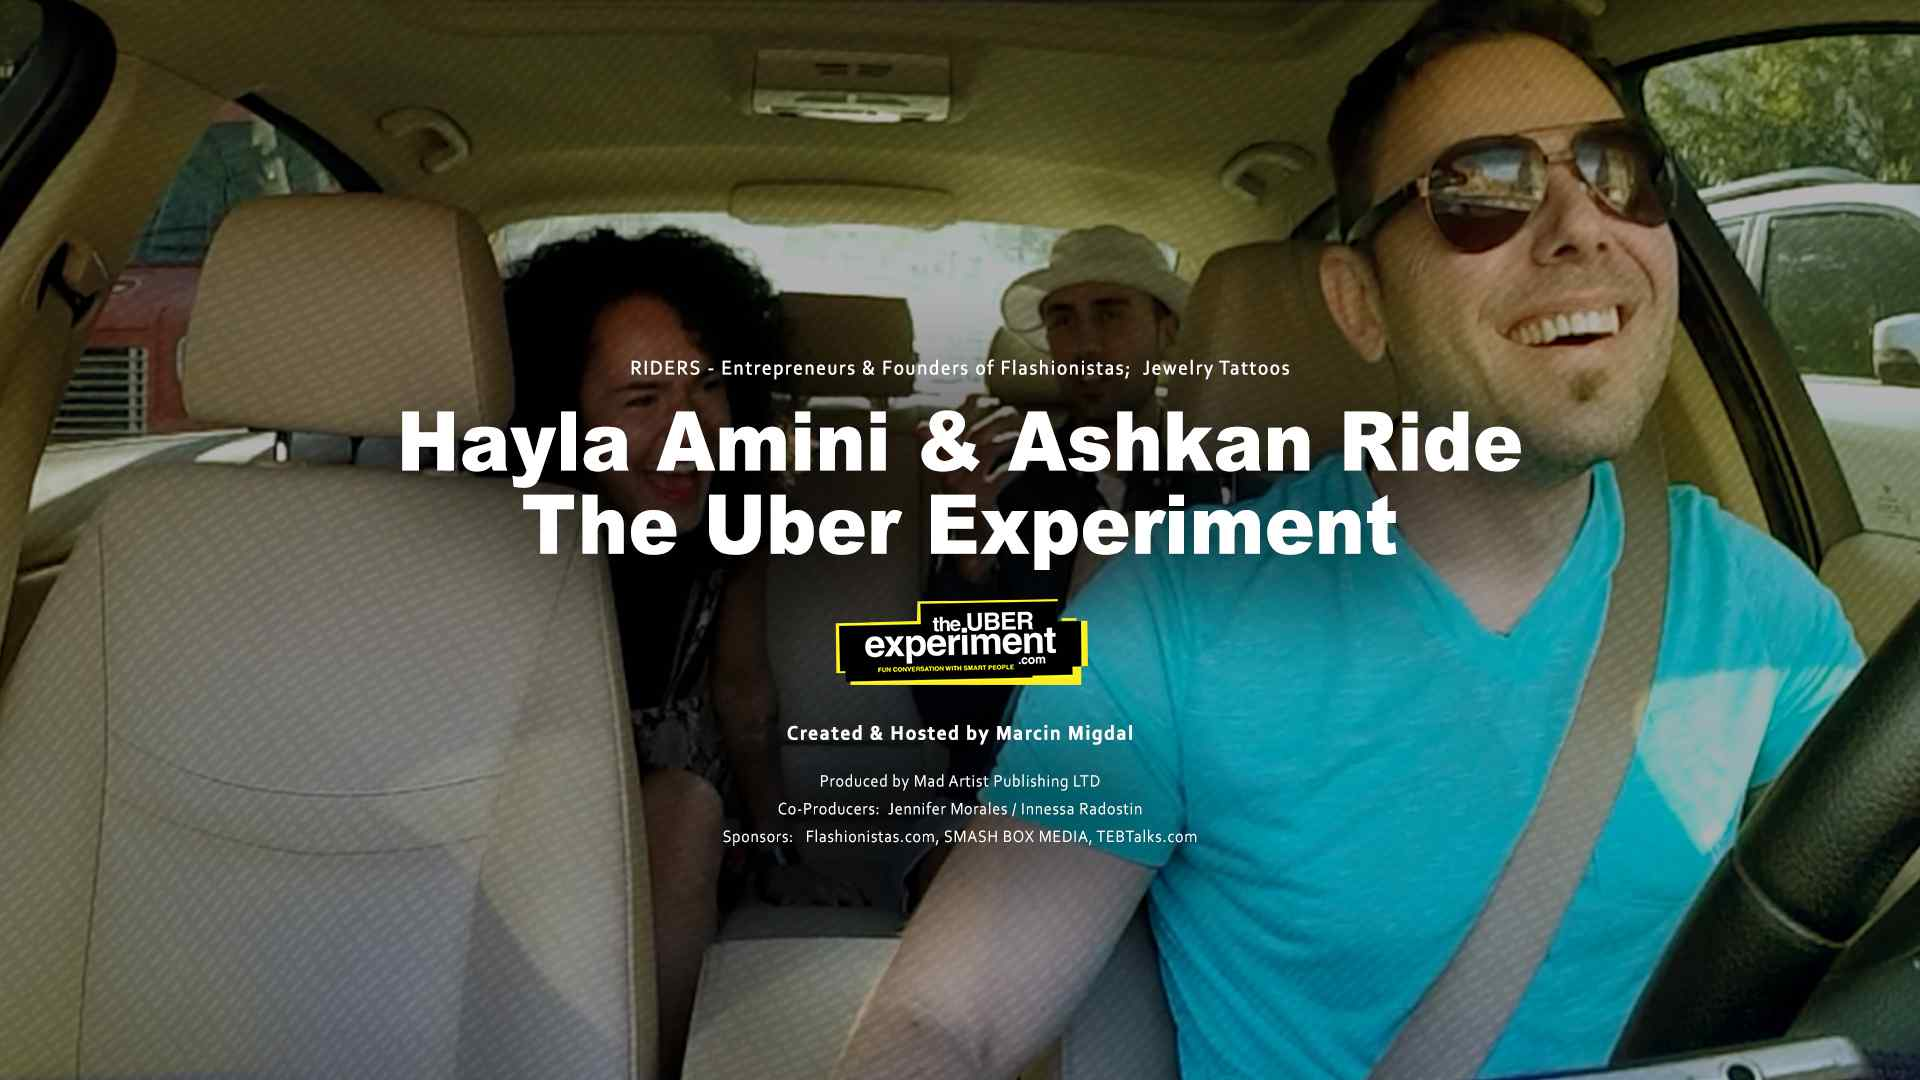 Founders of Flashionistas: Hayla Amini & Ash ride The UBER Experiment Reality Show